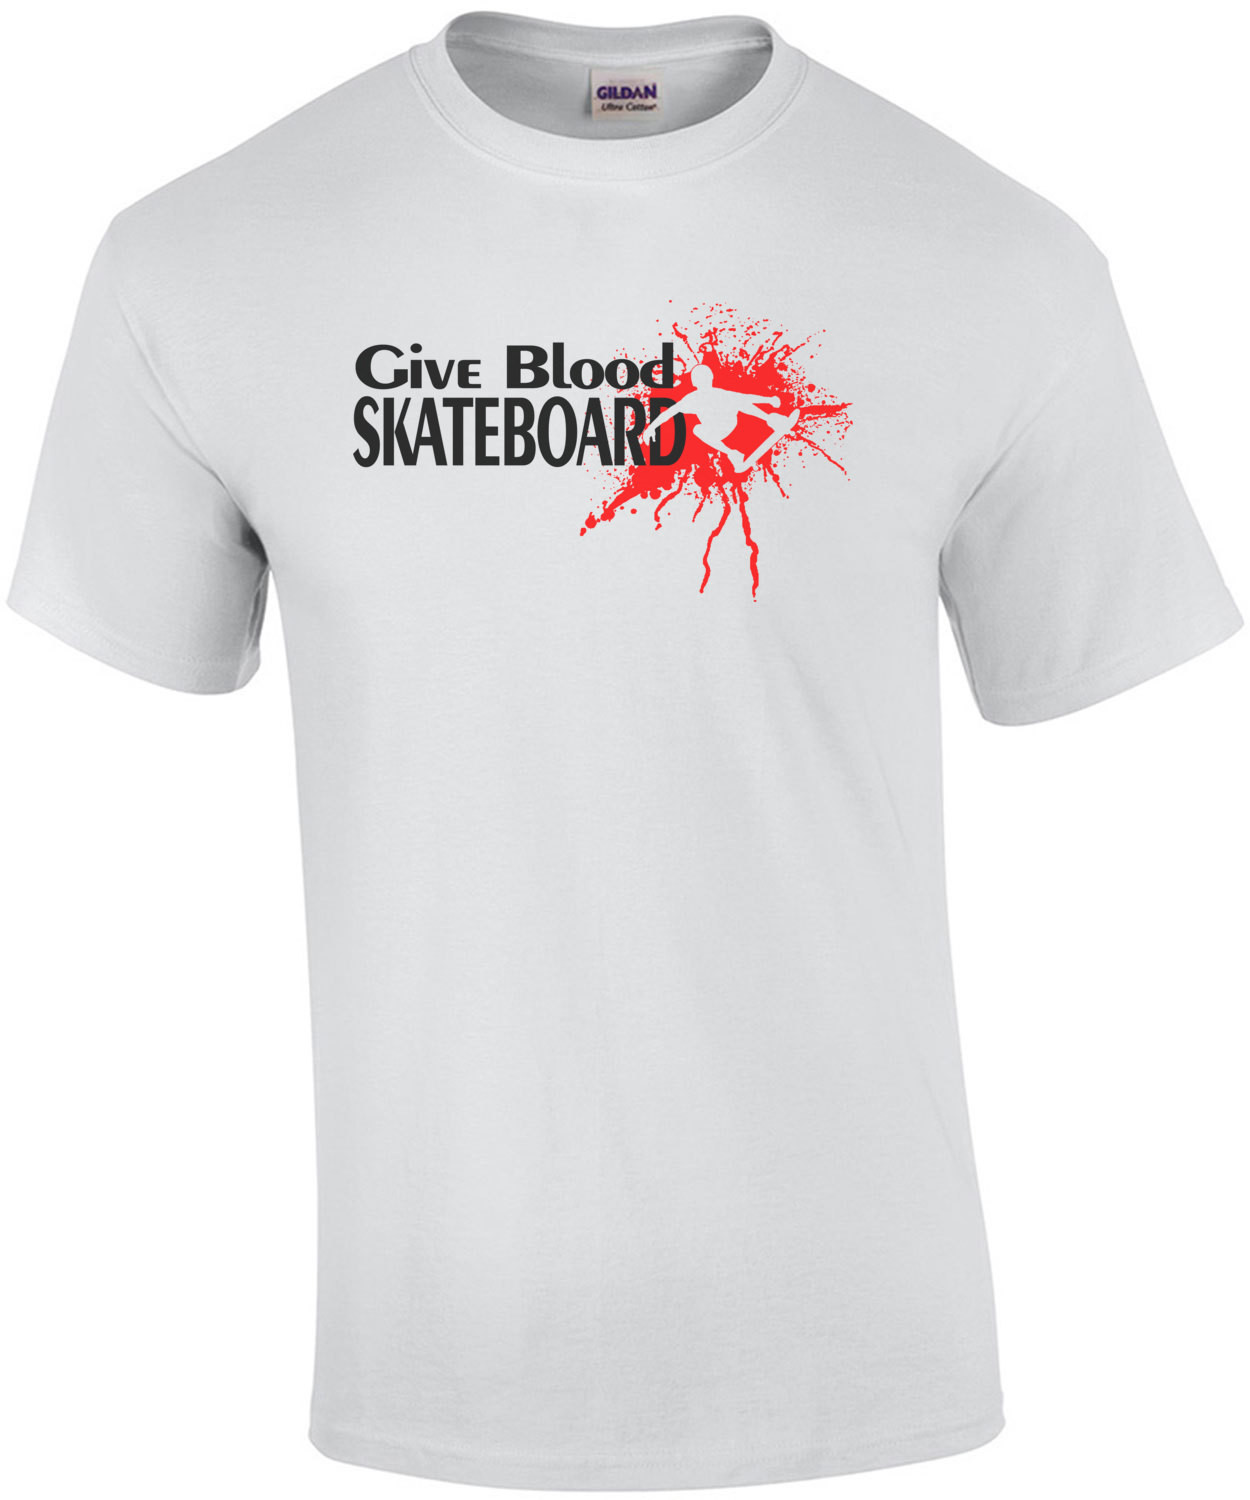 Give Blood Skateboard T-Shirt